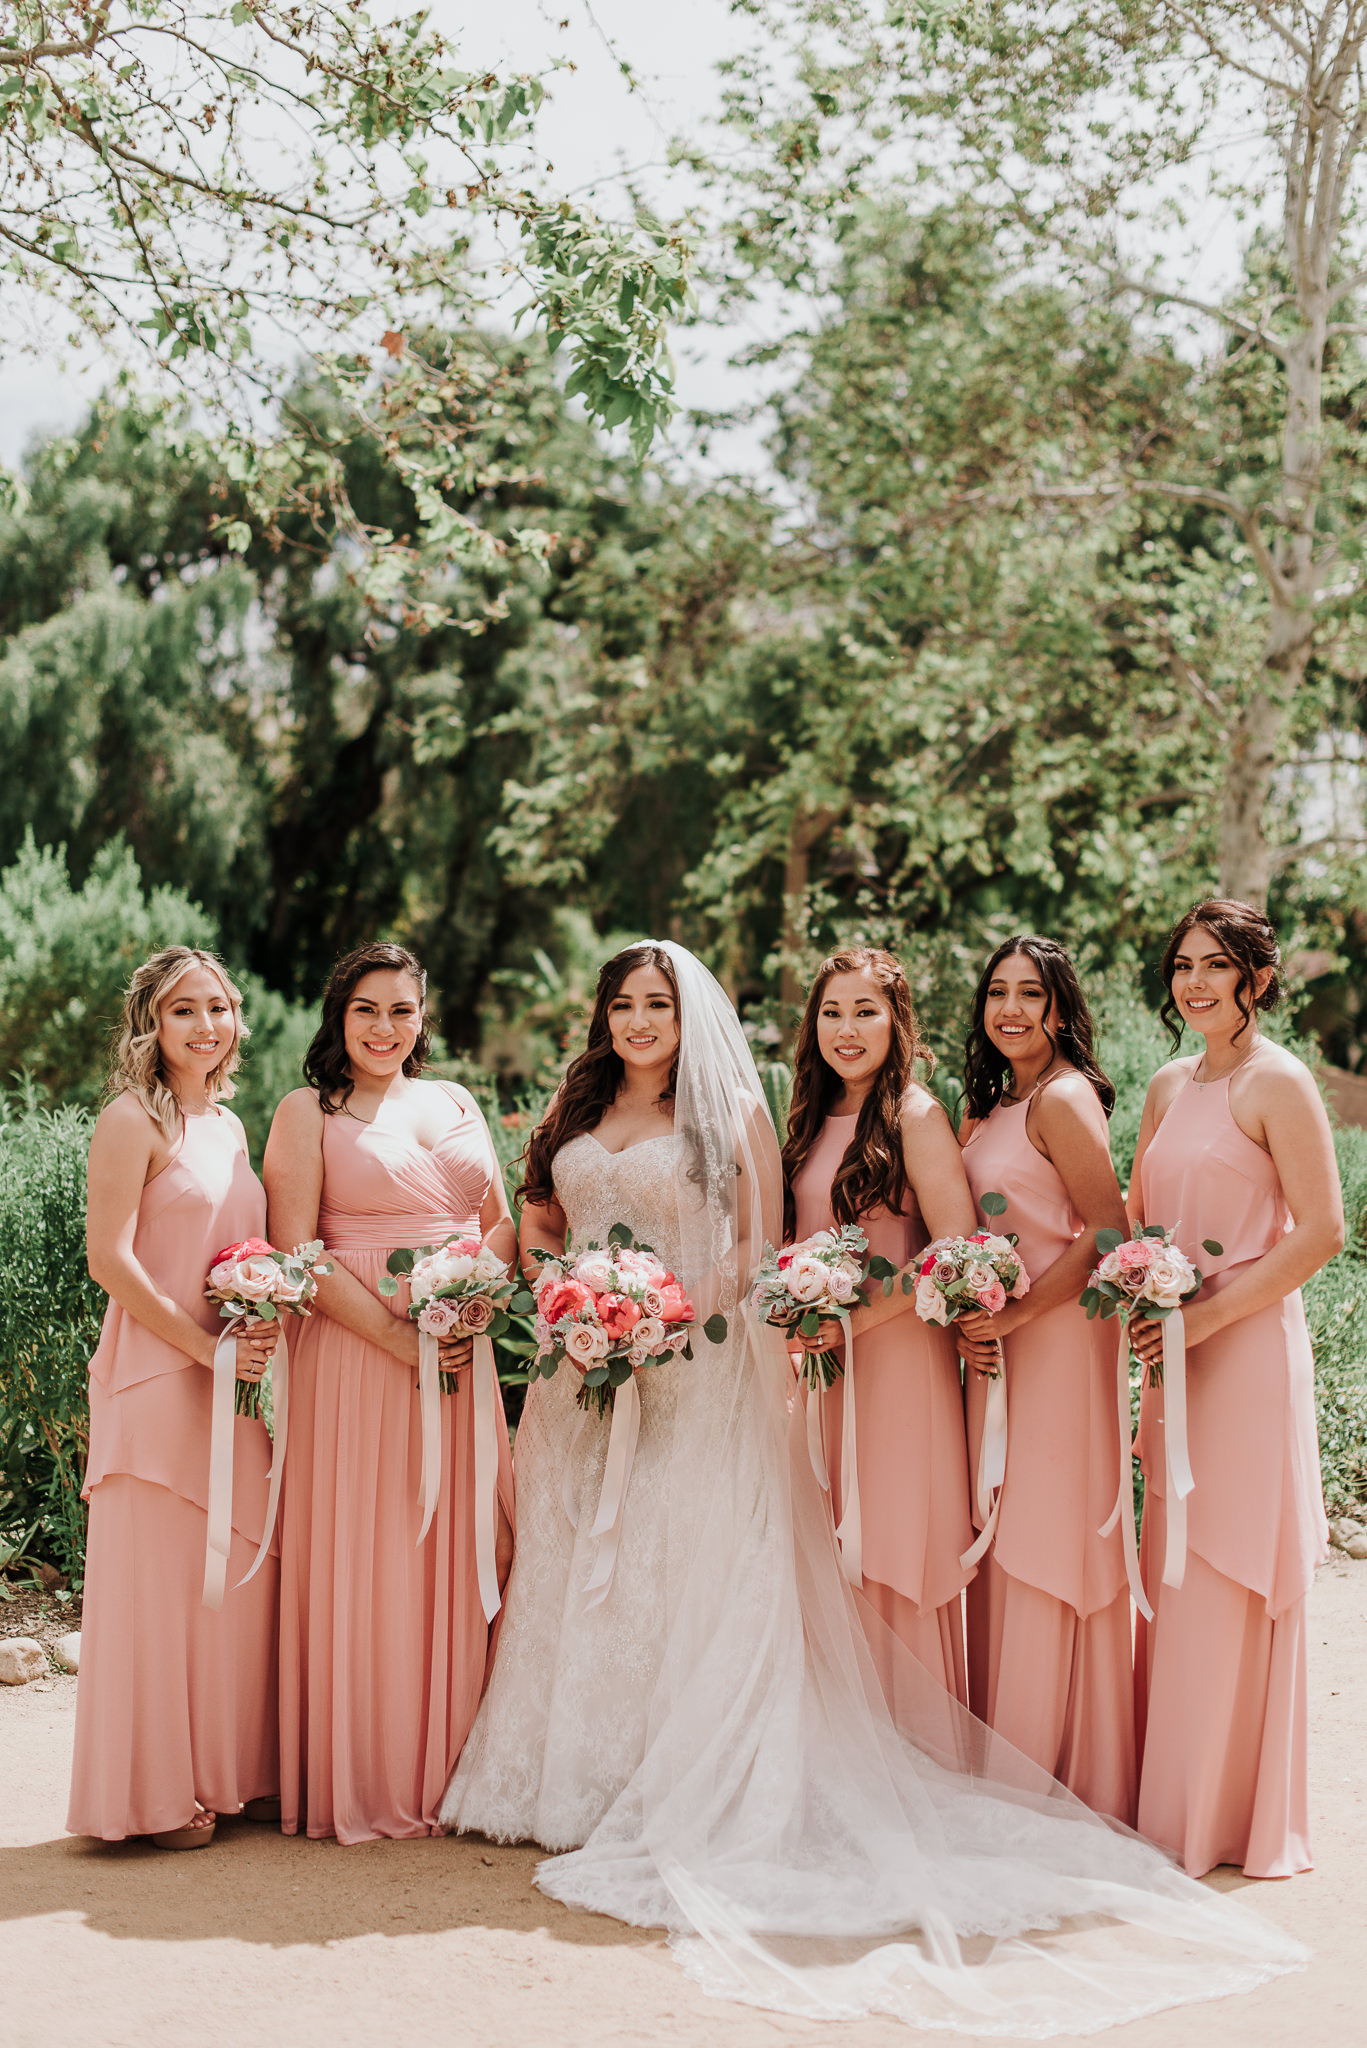 2019-04-05_Brittany_and_Nick_-_Married_-_San_Juan_Capistrano-36.jpg